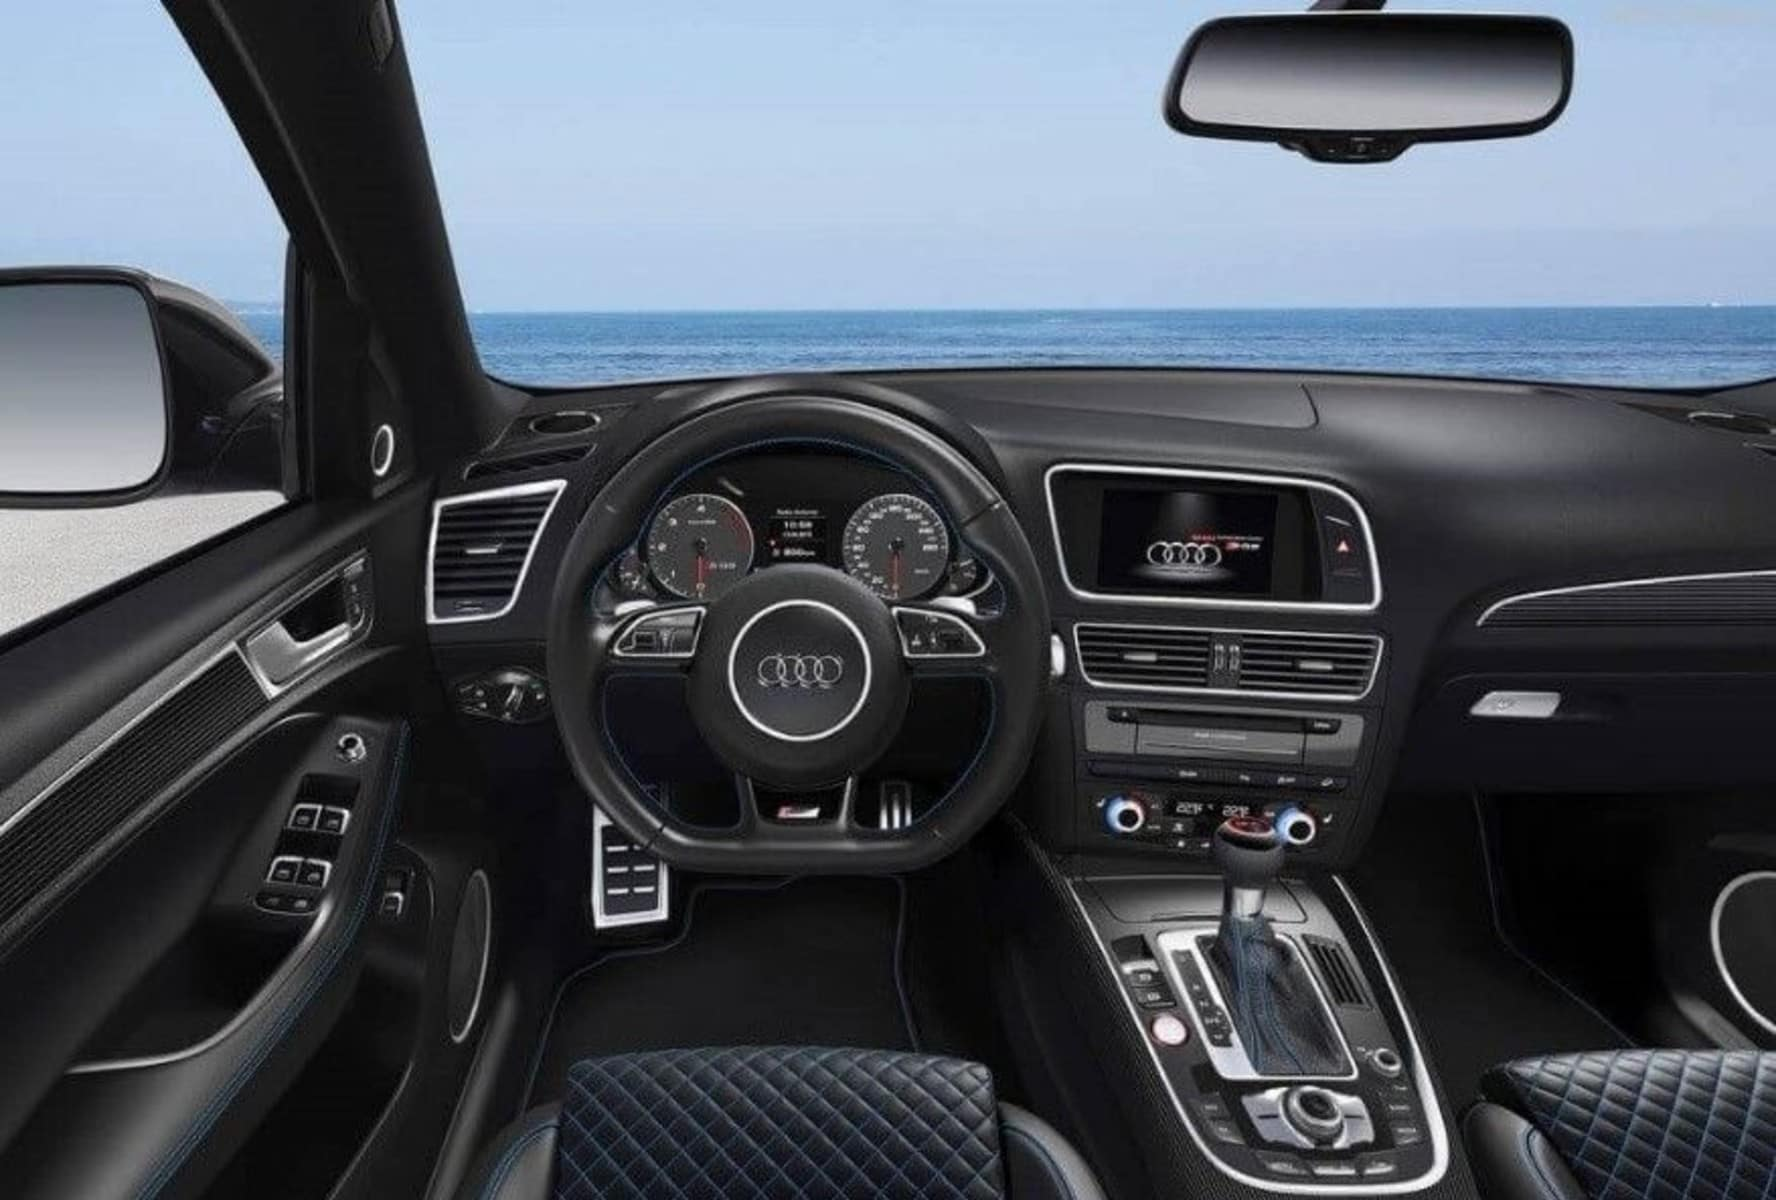 2019 Audi SQ5 Dashboard Technology